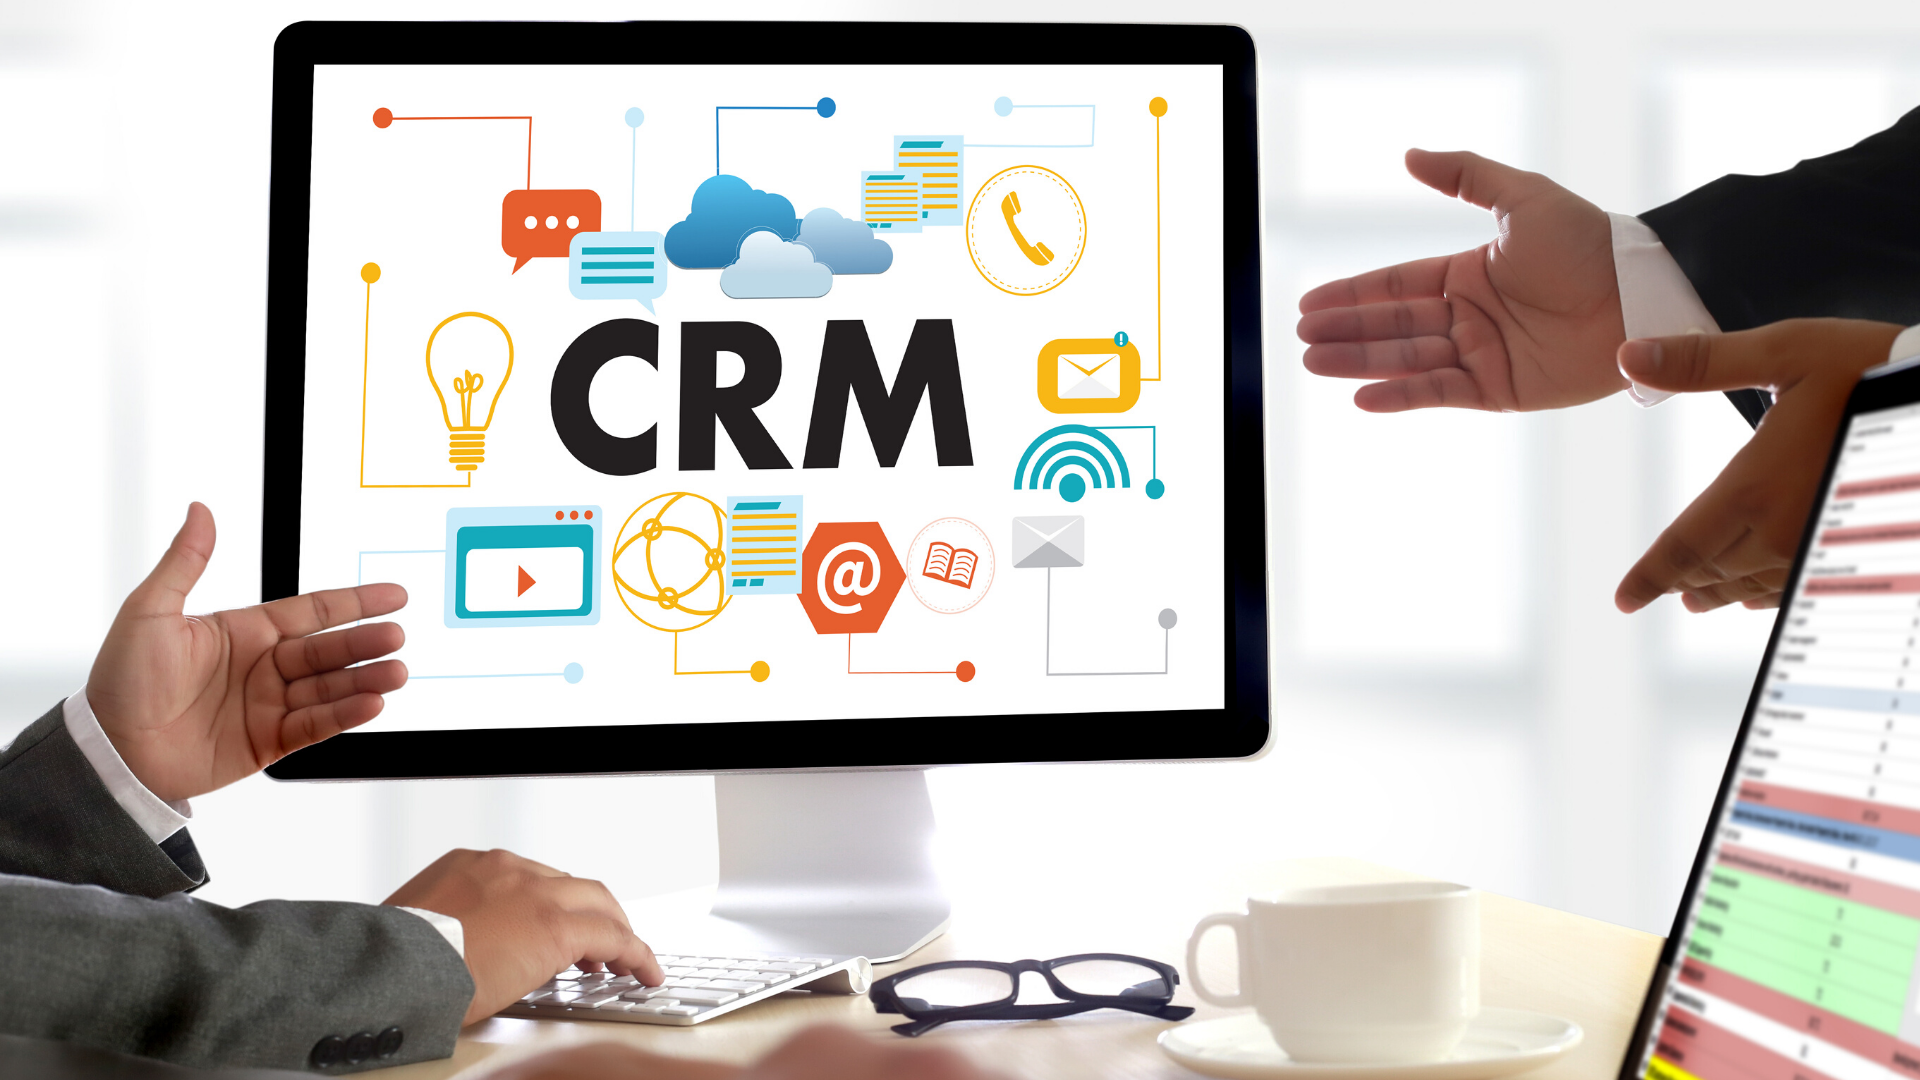 Image of business people around computer displaying the word CRM